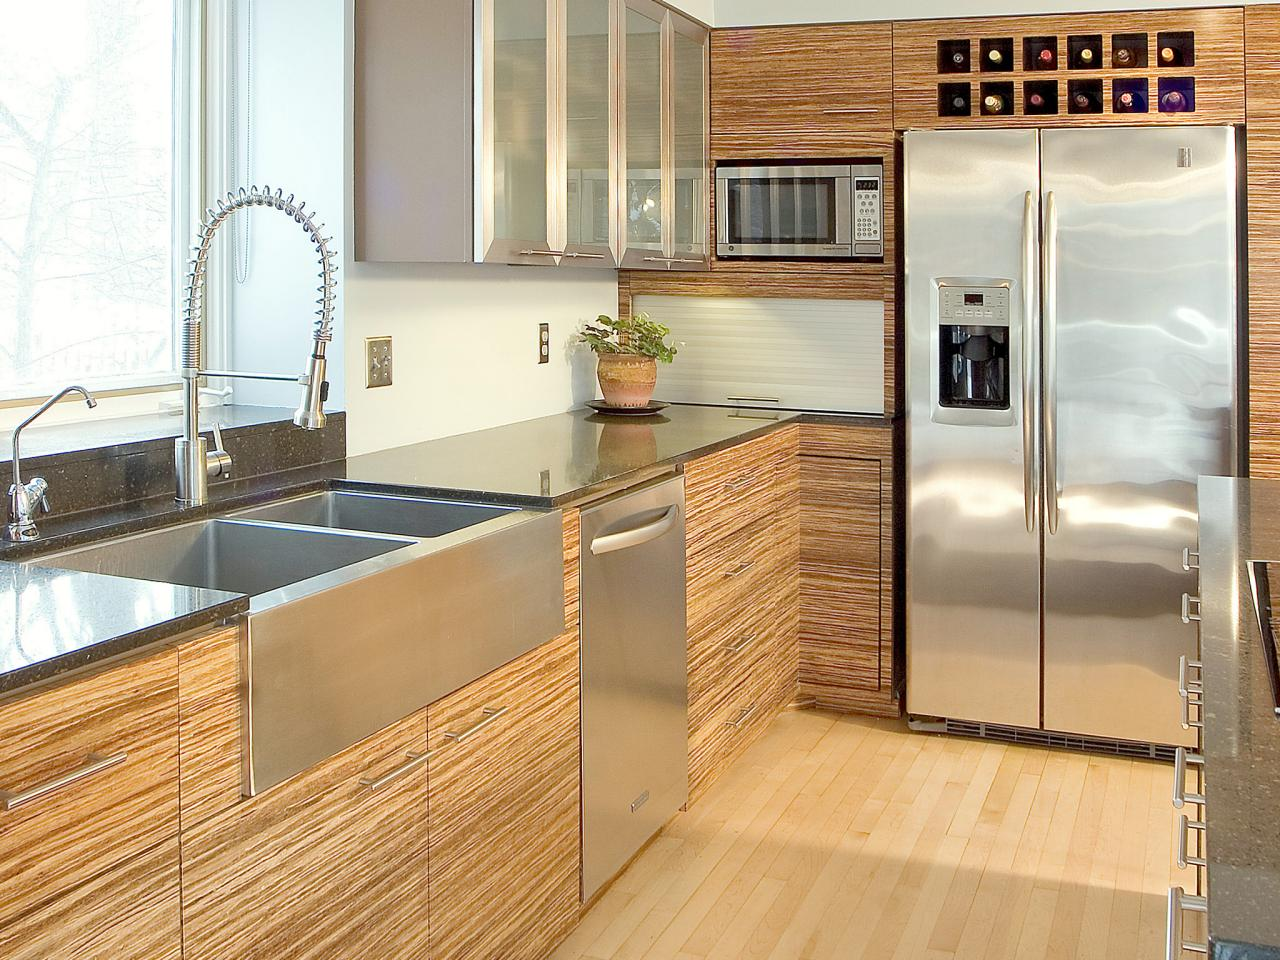 Kitchen Ideas Modern modern kitchen cabinets: pictures, ideas & tips from hgtv | hgtv